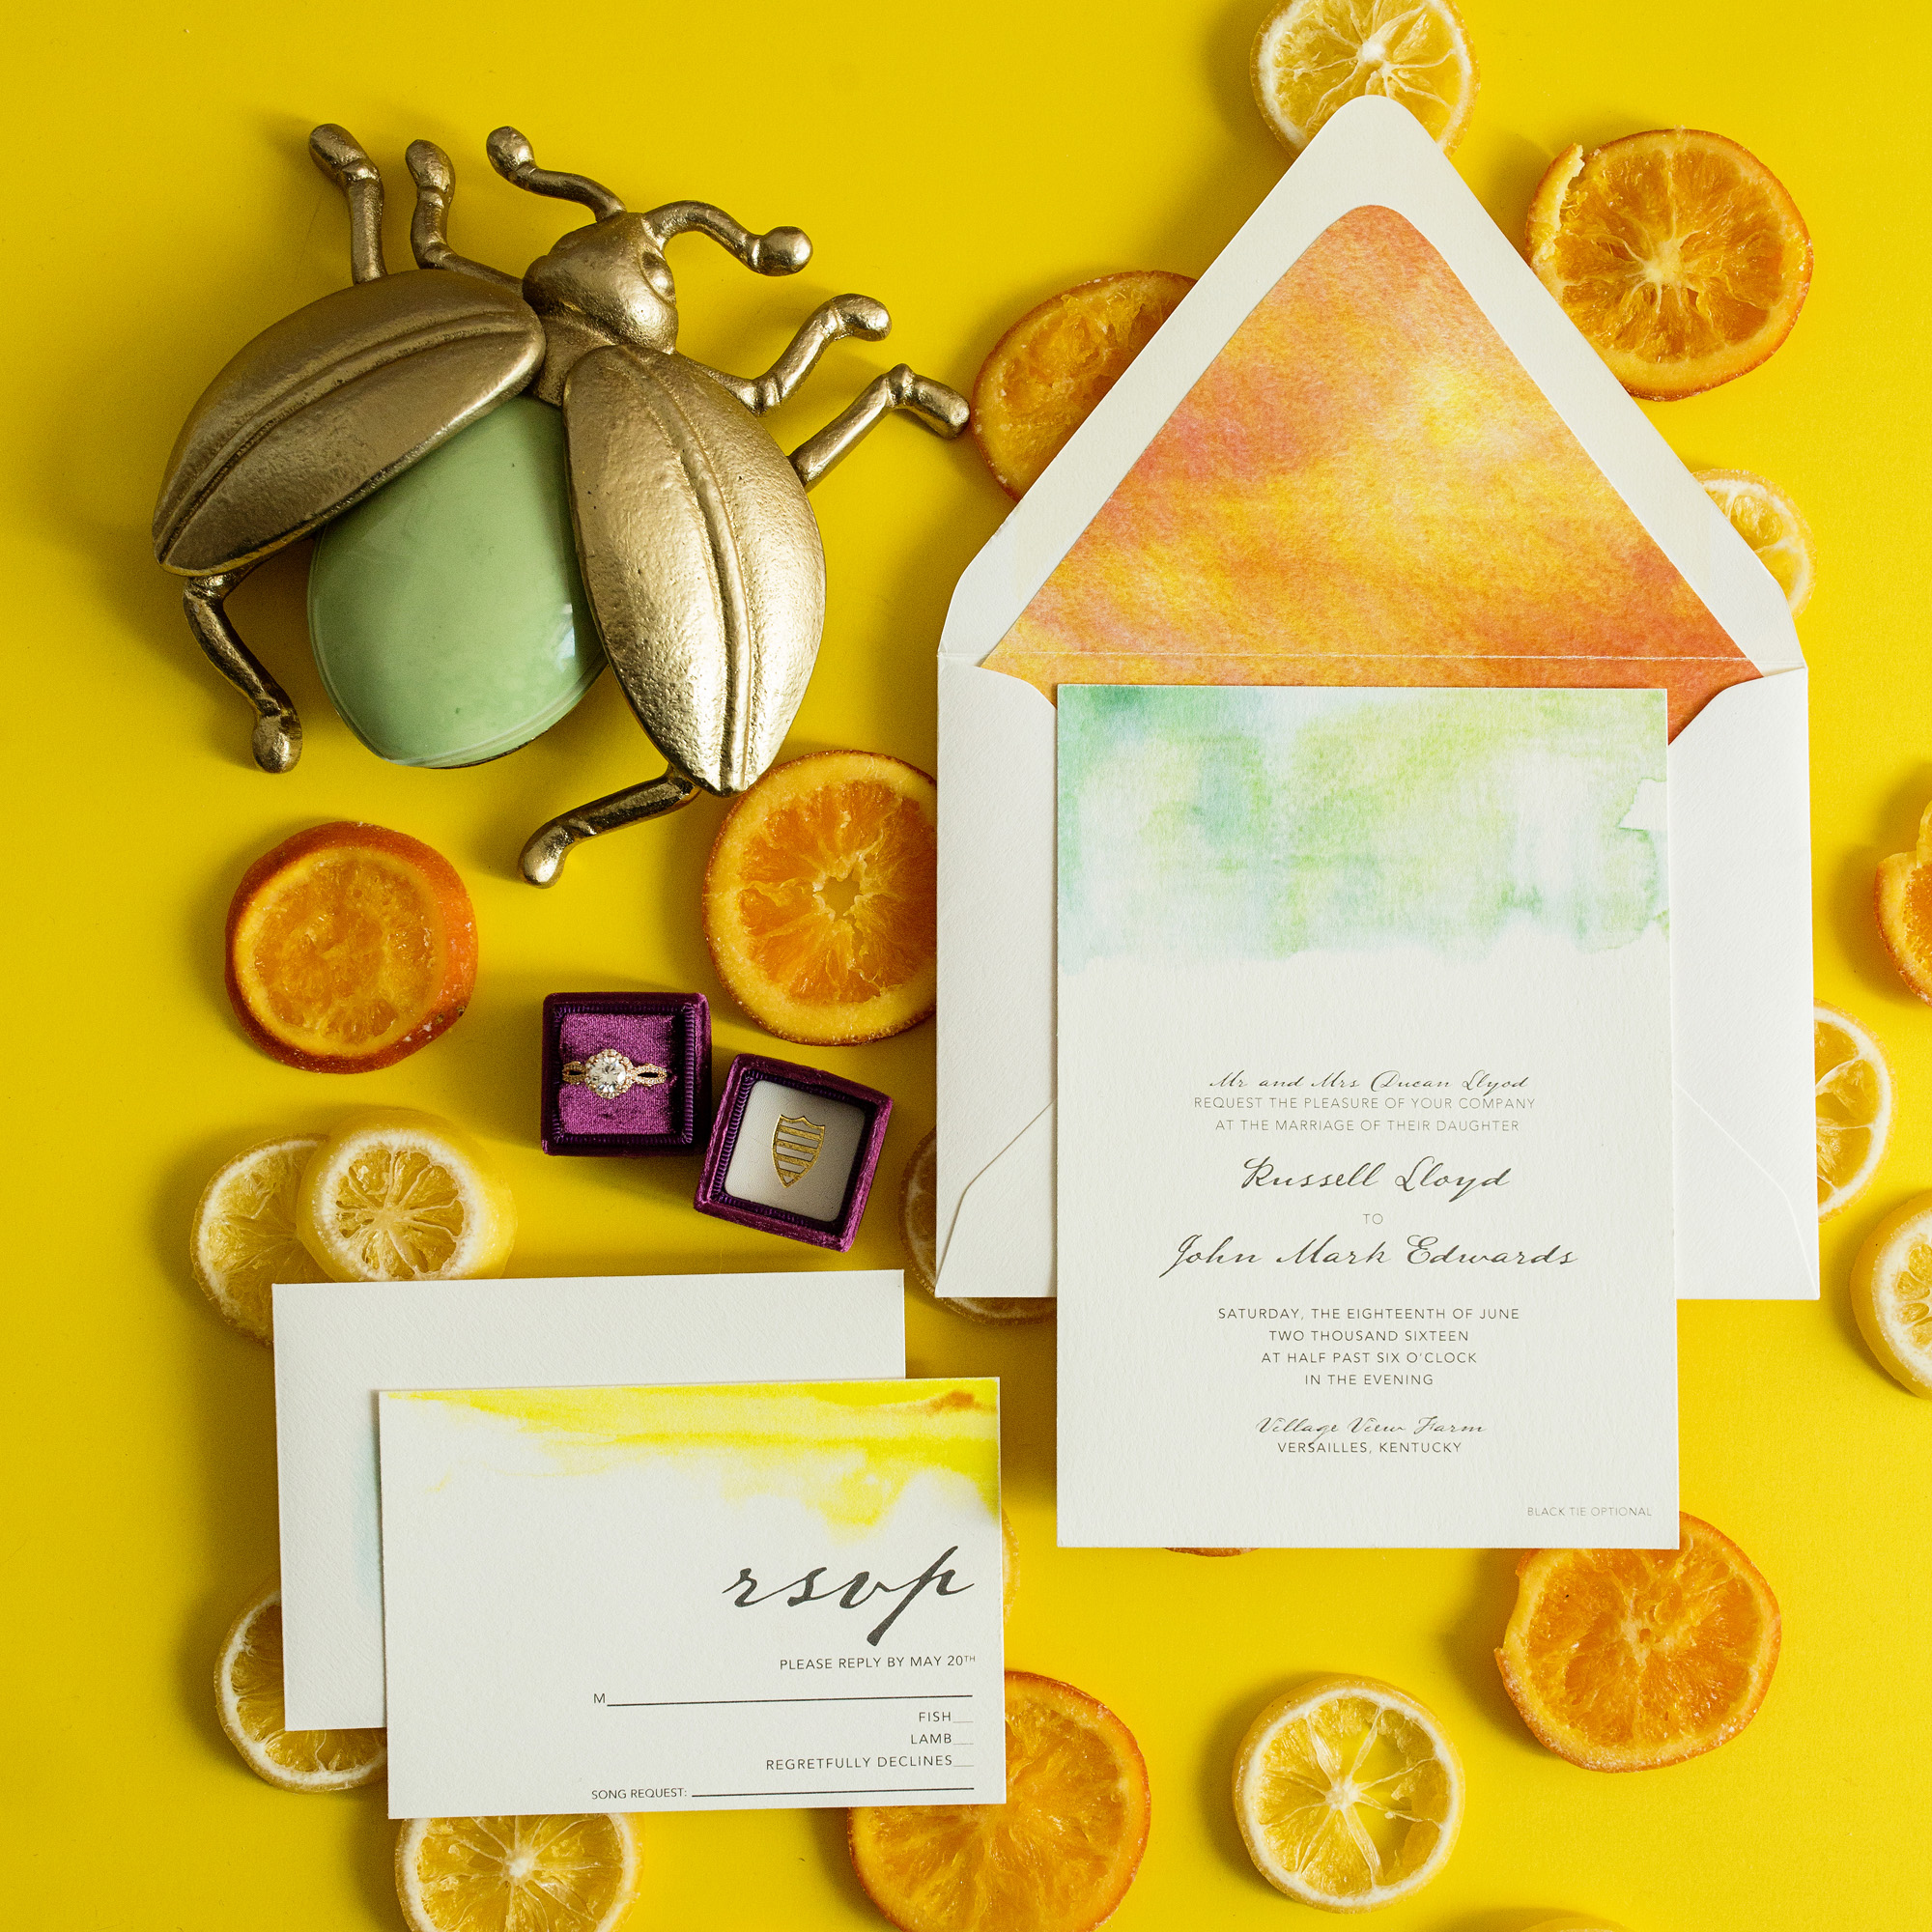 Seriously_Sabrina_Photography_Commercial_Simply_Done_Invites_2019_March_056